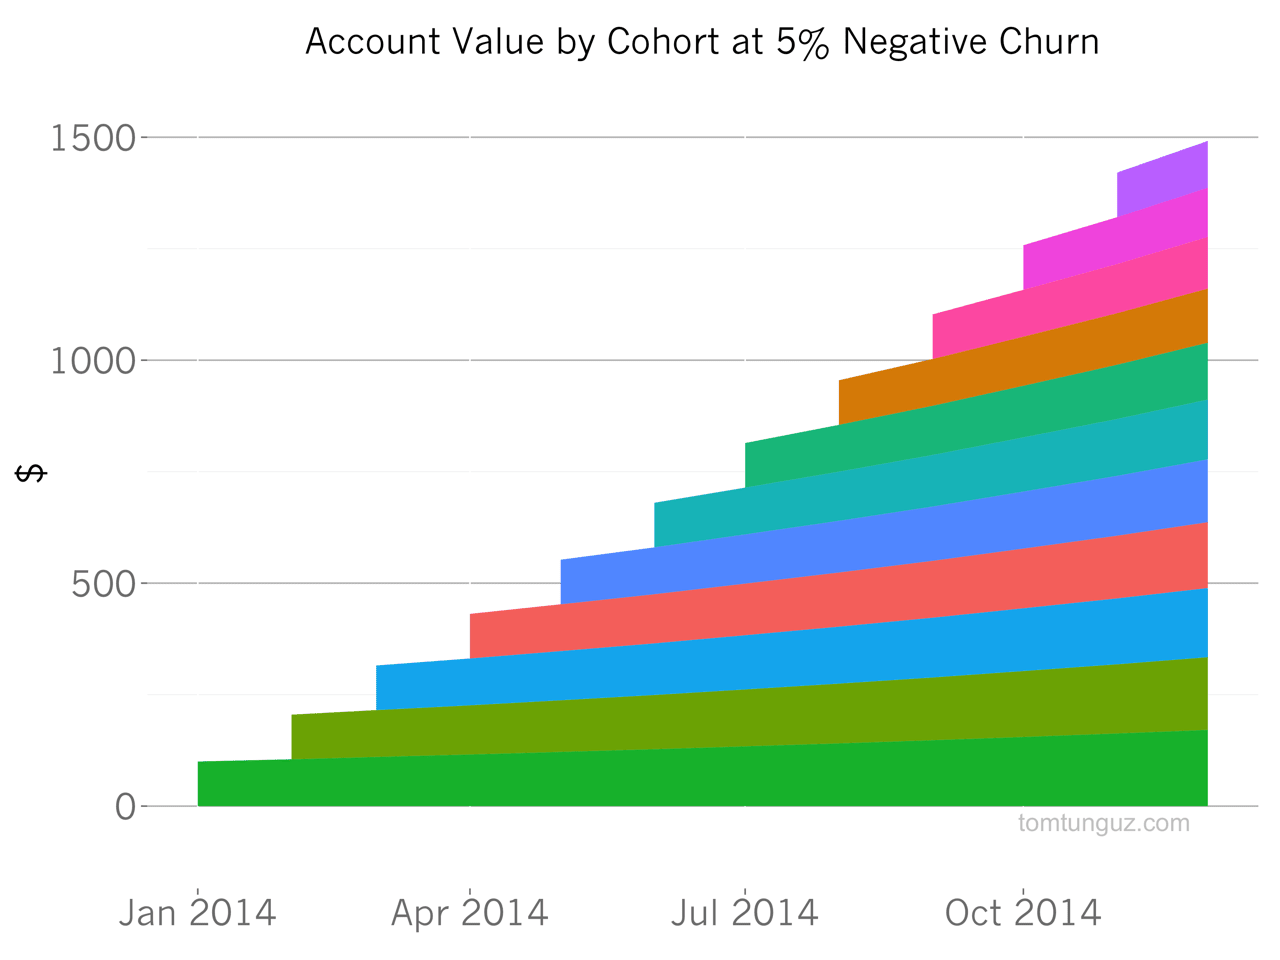 This is a colorful horizontal bar graph showing increasing account value by cohort at 5% negative churn.. The value of account grows over time